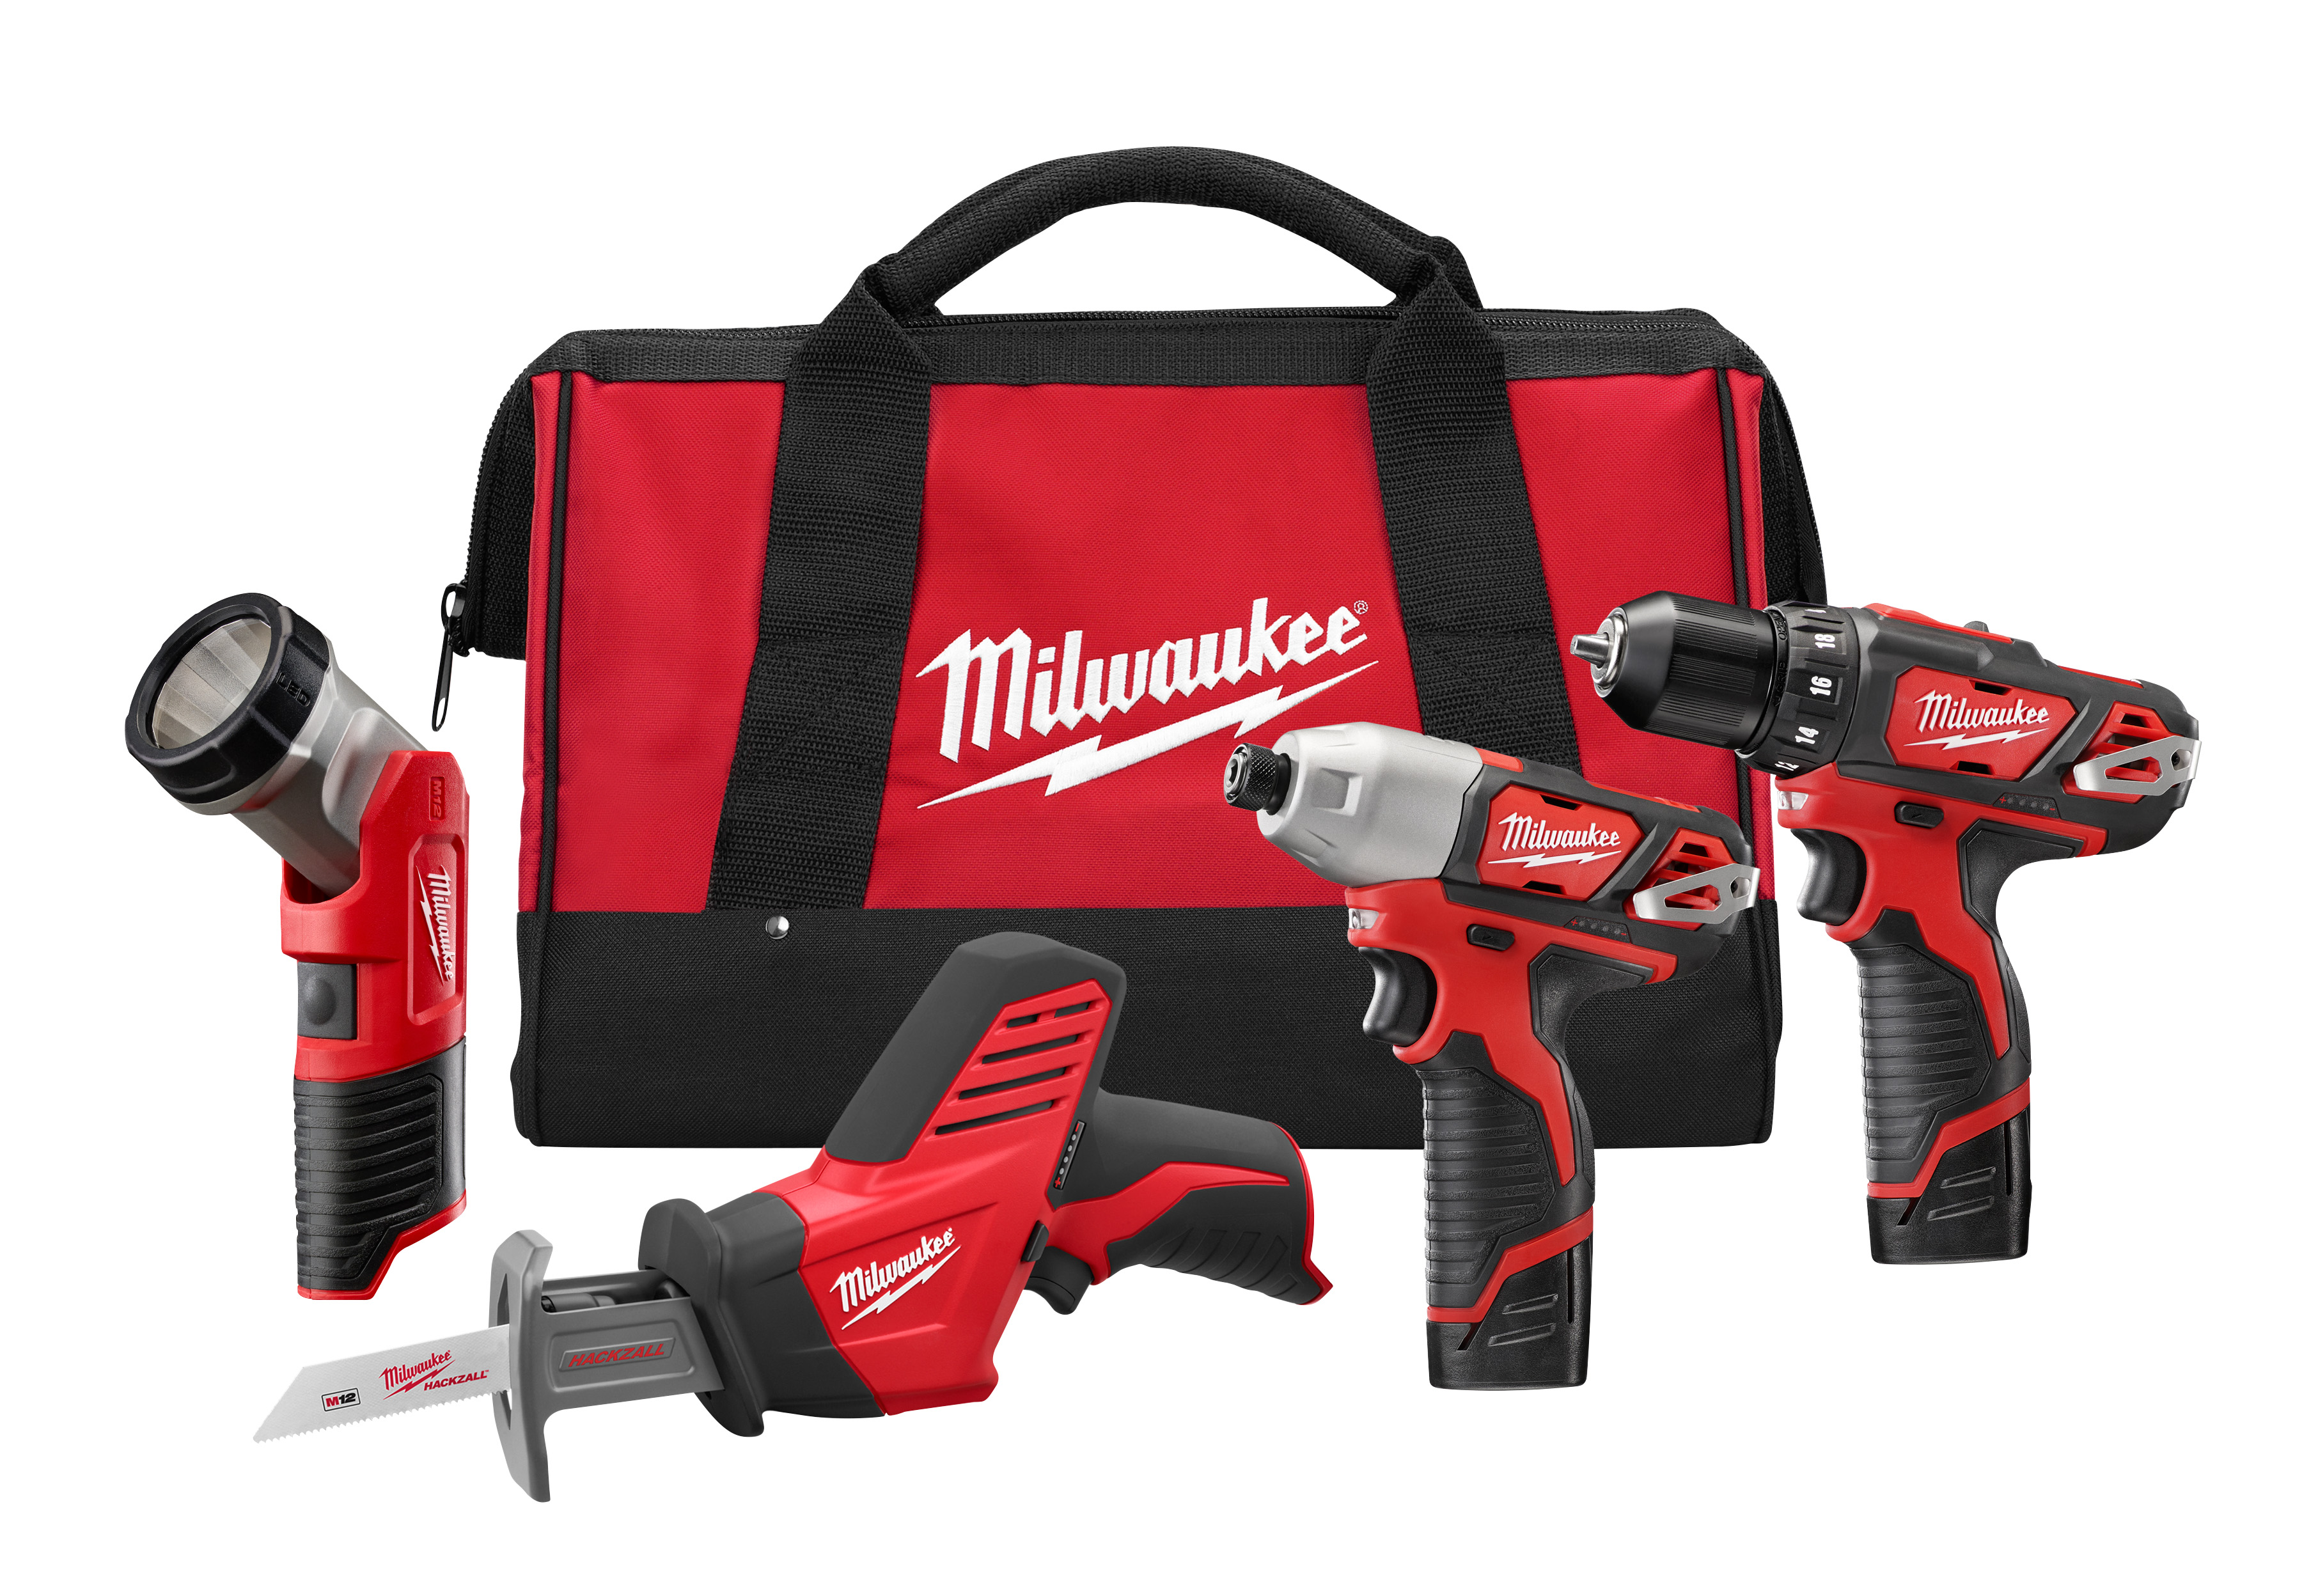 Milwaukee® M12™ REDLITHIUM™ 48-11-2401 Compact Rechargeable Cordless Battery Pack, 1.5 Ah Lithium-Ion Battery, 12 VDC Charge, For Use With Milwaukee® M12™ Cordless Power Tool